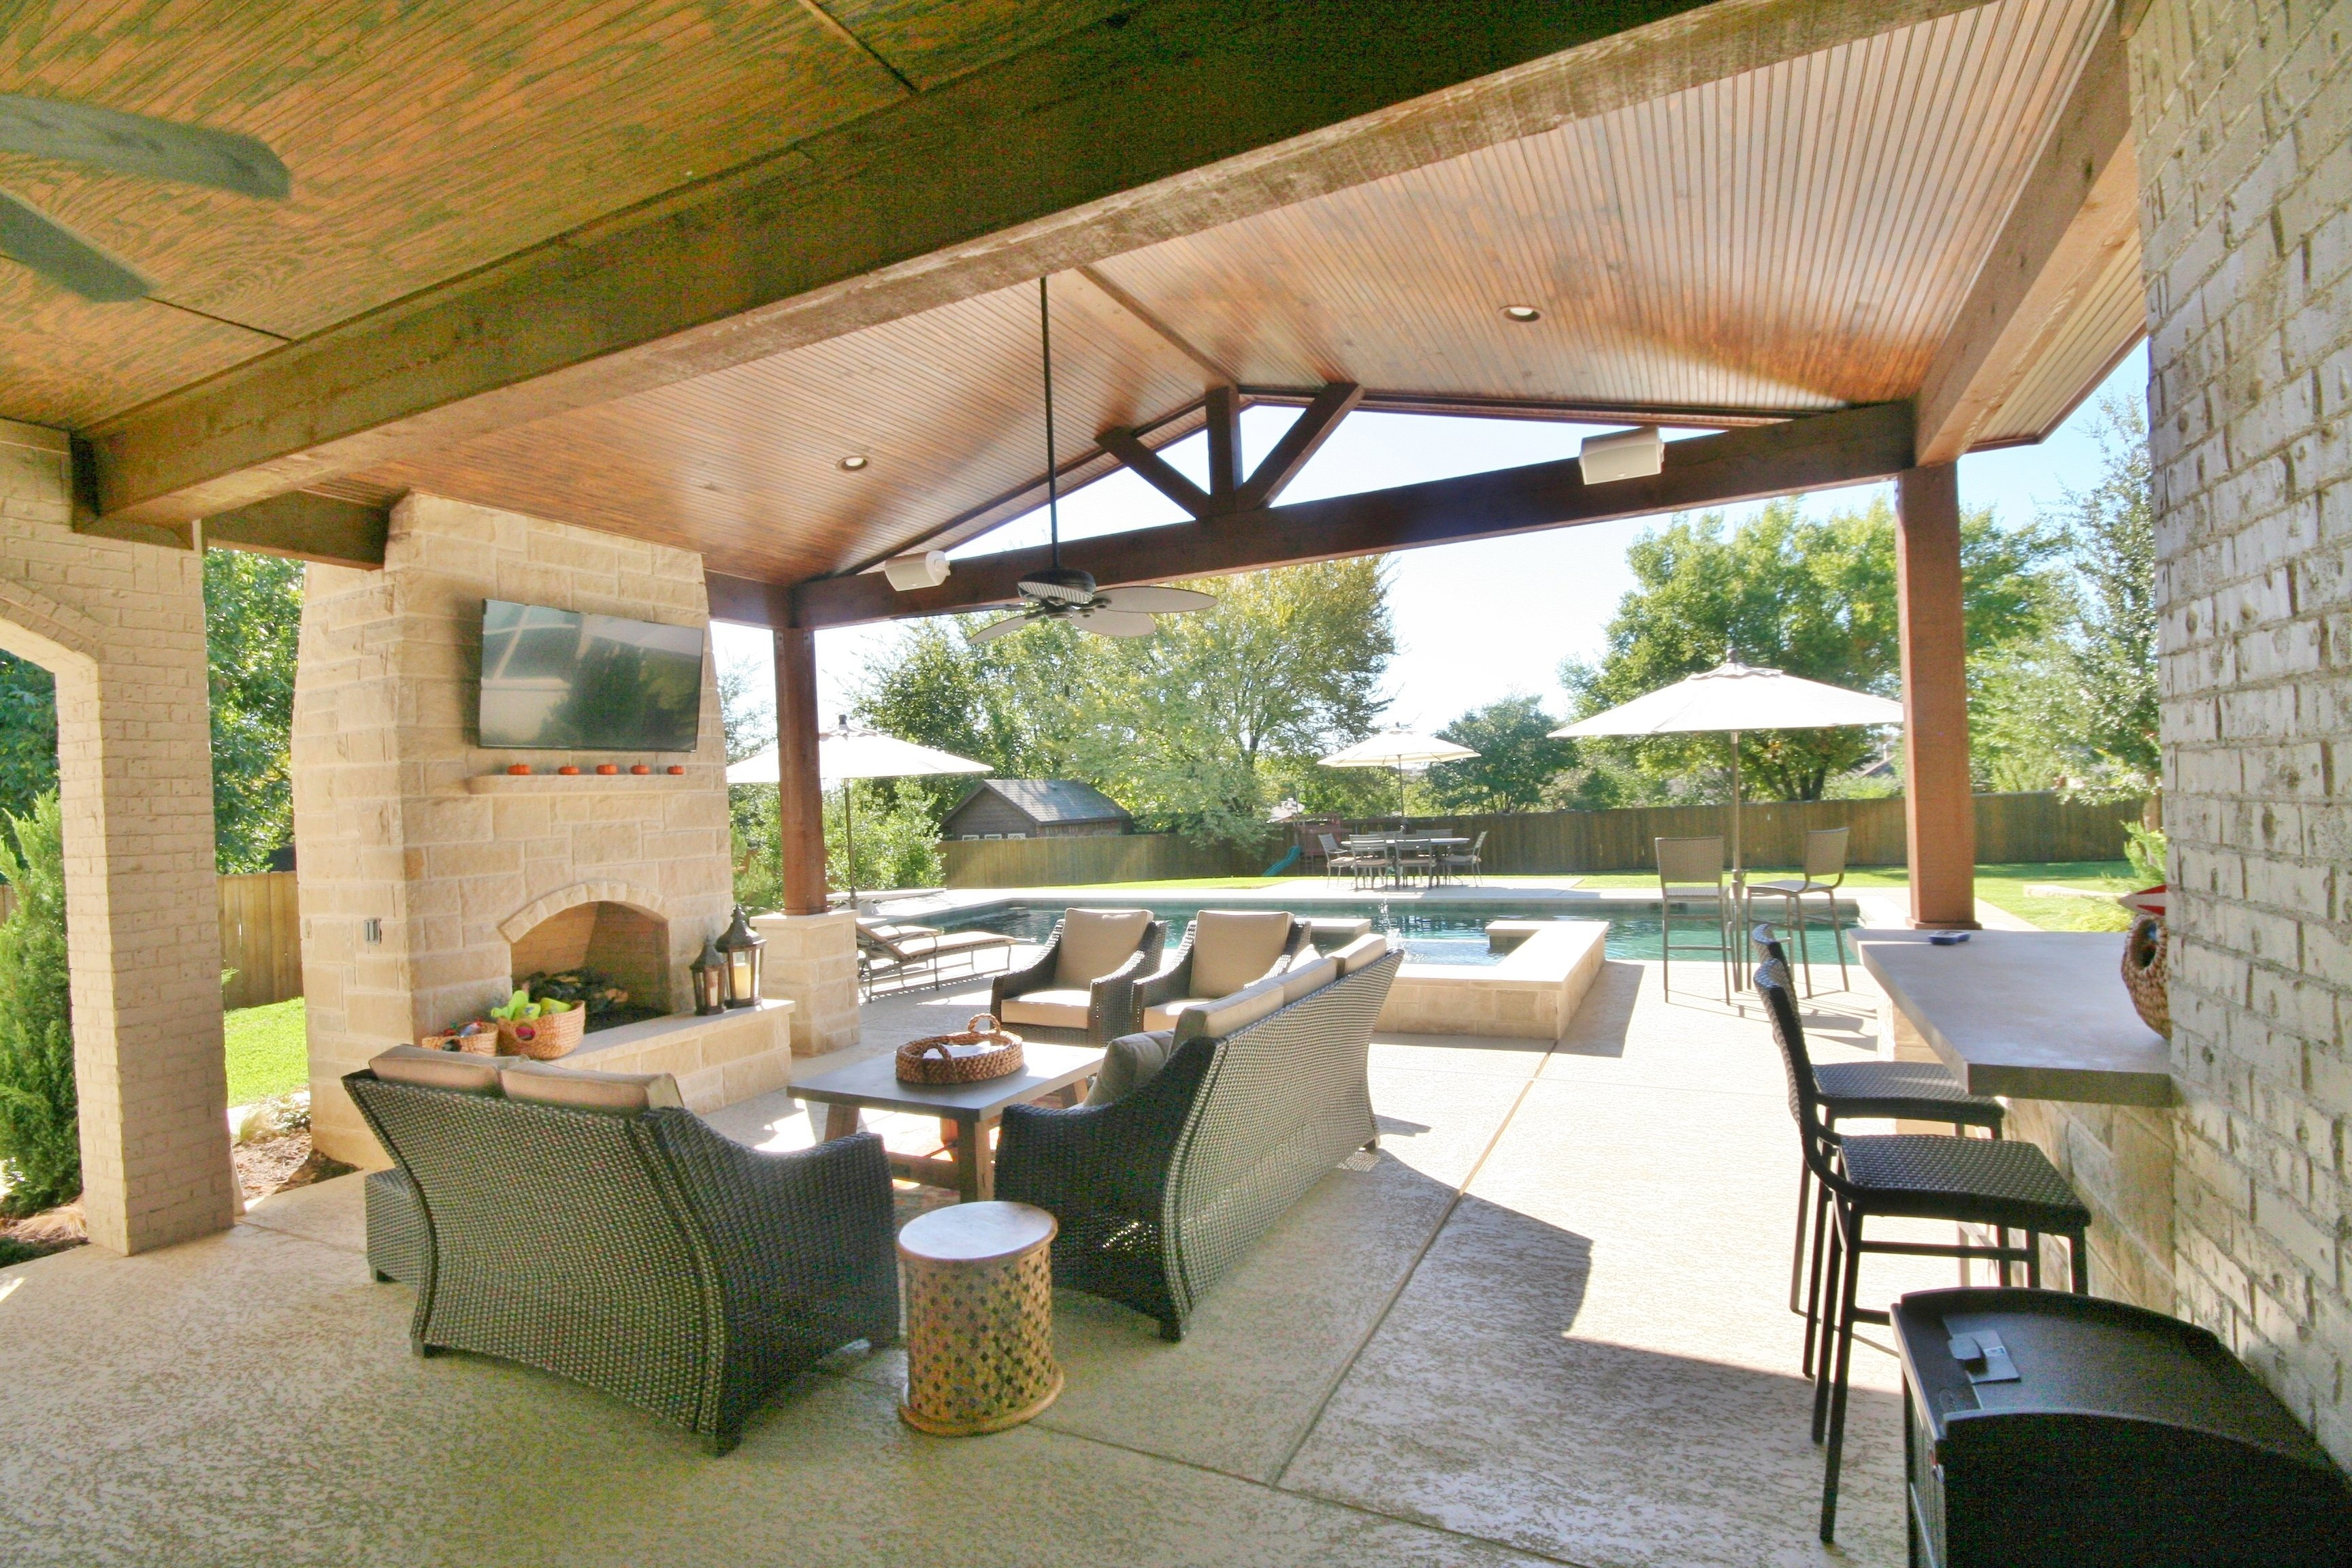 Raised bar with Leuders, Solid roof structure with Lighting, fireplace, Sundek & Zodiac Equipment